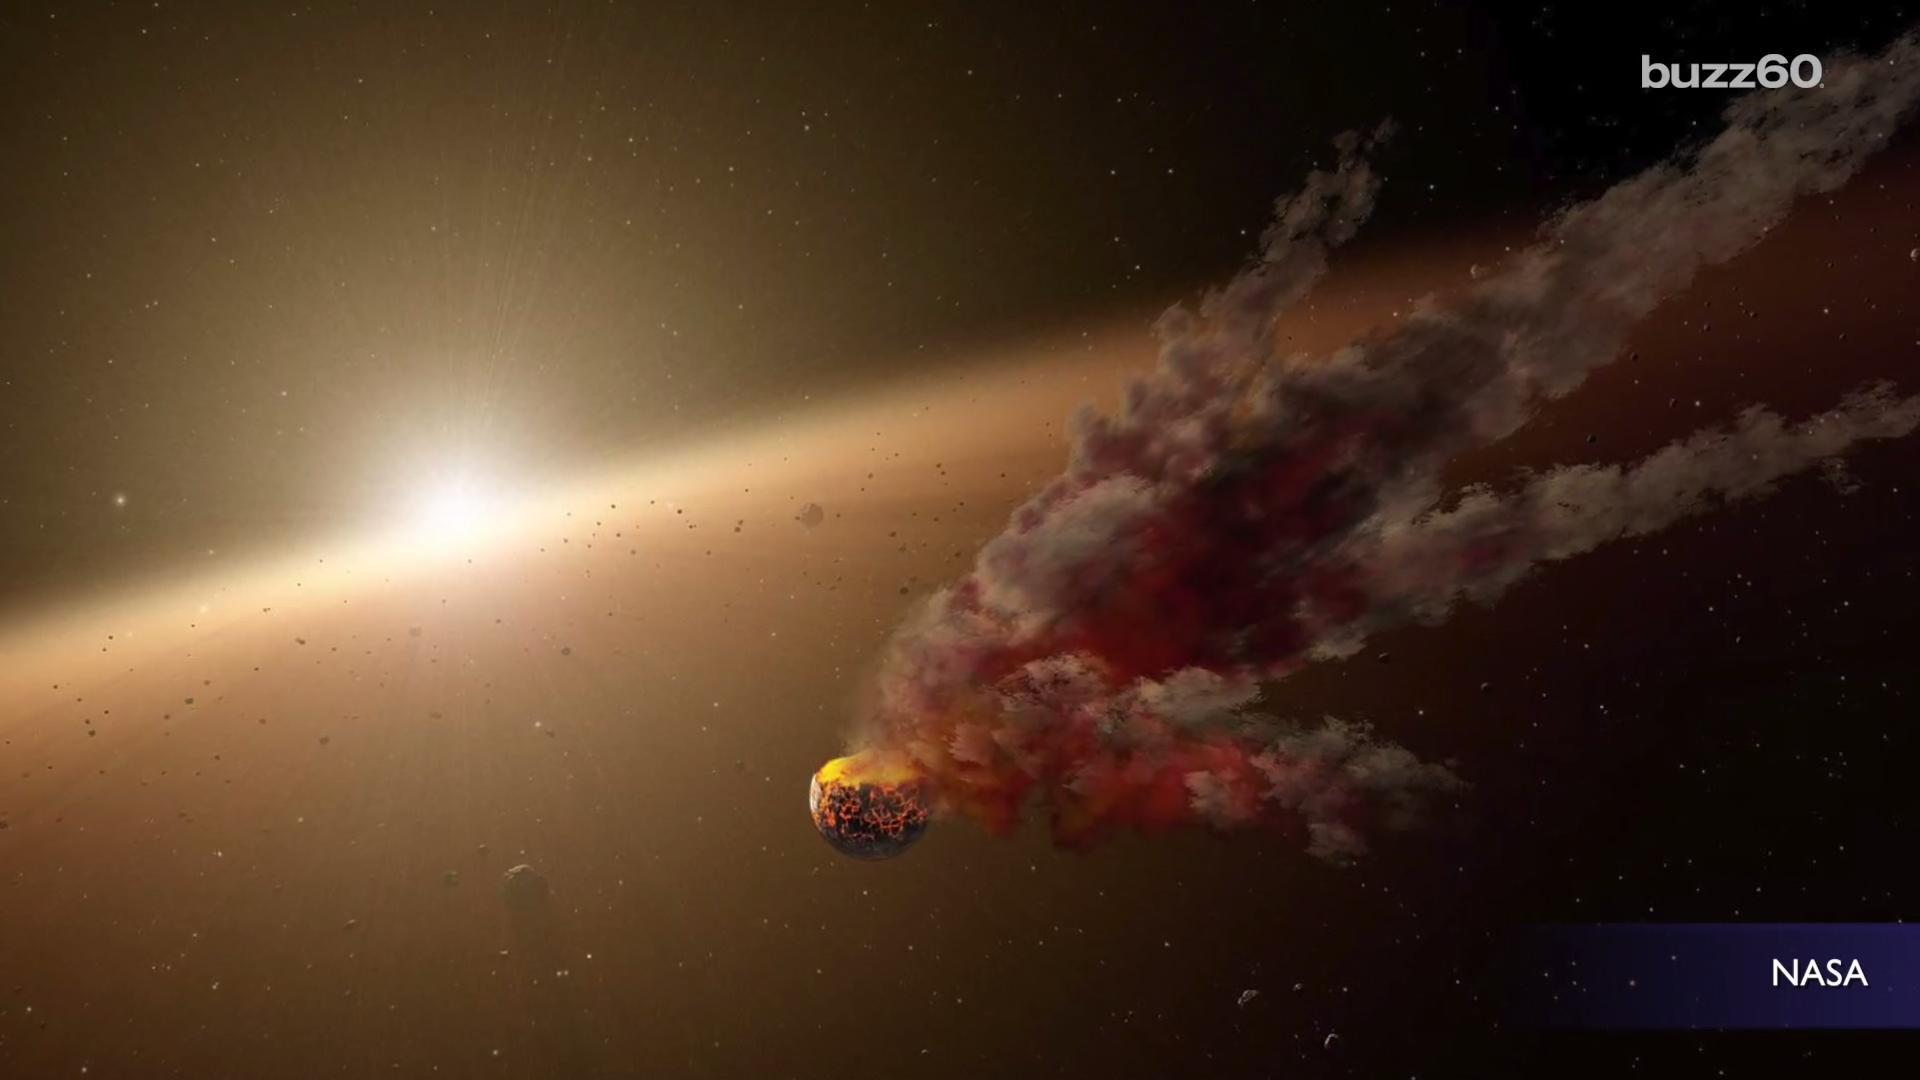 Aliens After All? The 'Alien Megastructure' Star's Dimming Can't Be Explained By Natural Causes